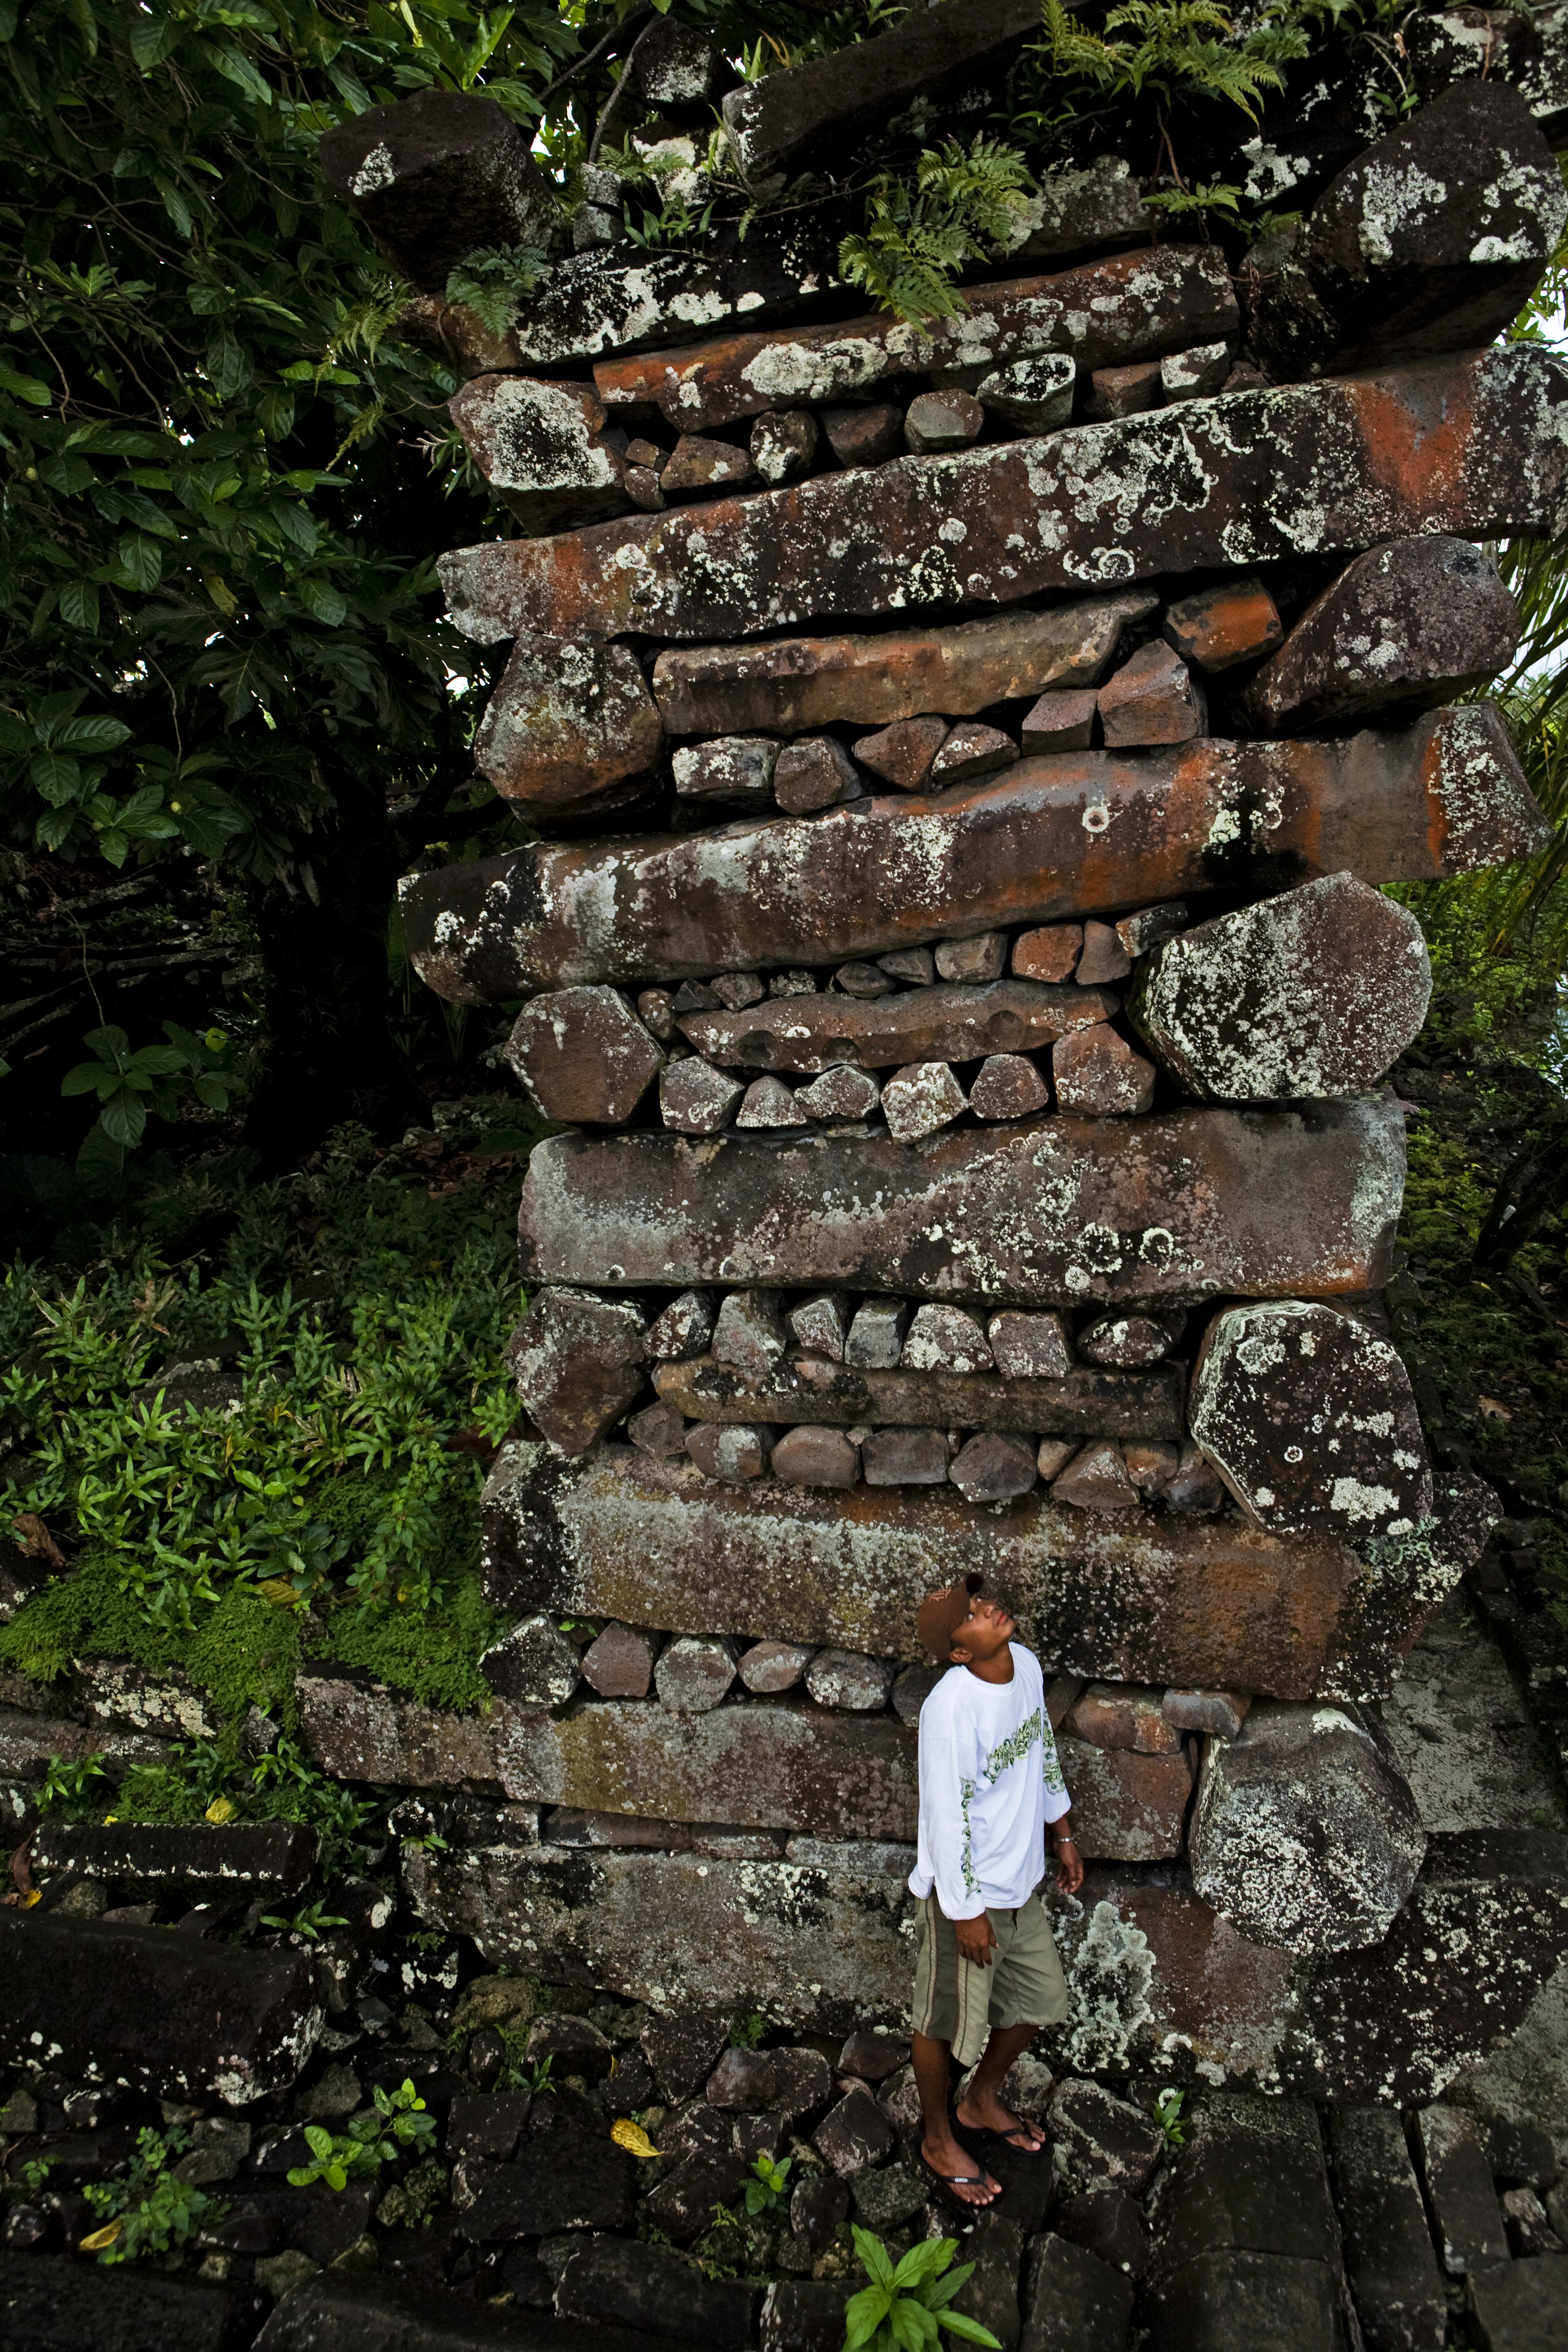 The ancient ruins of Nan Madol on Pohnpei Island, Micronesia on Jan. 28, 2008.